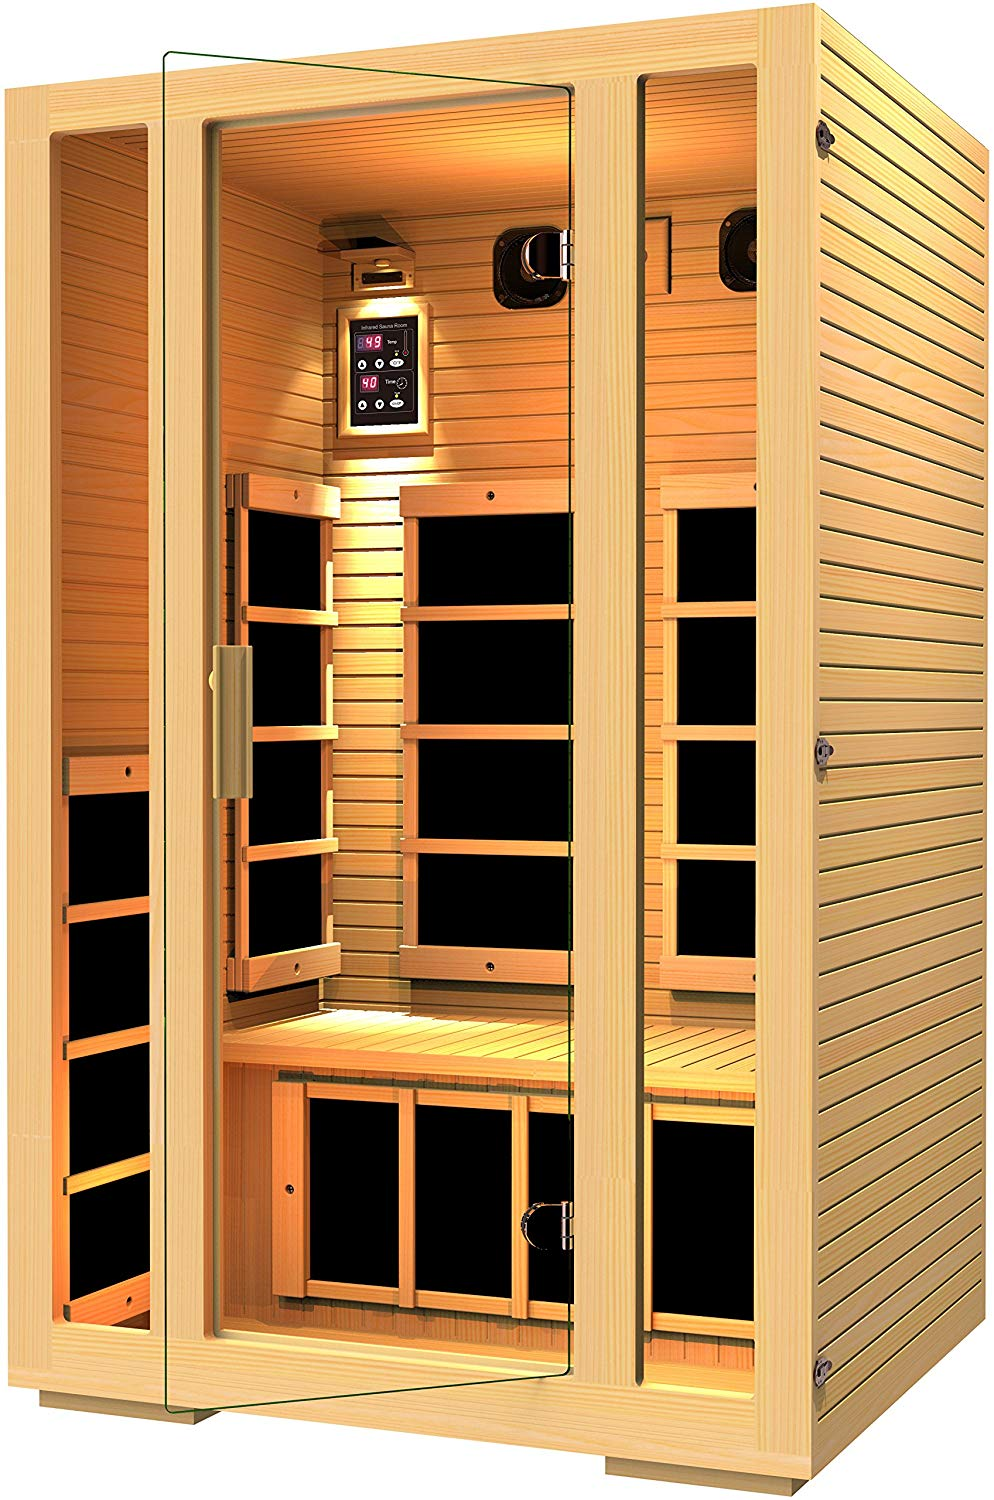 This Two-Person Sauna Is One of Amazons Hidden Gems in